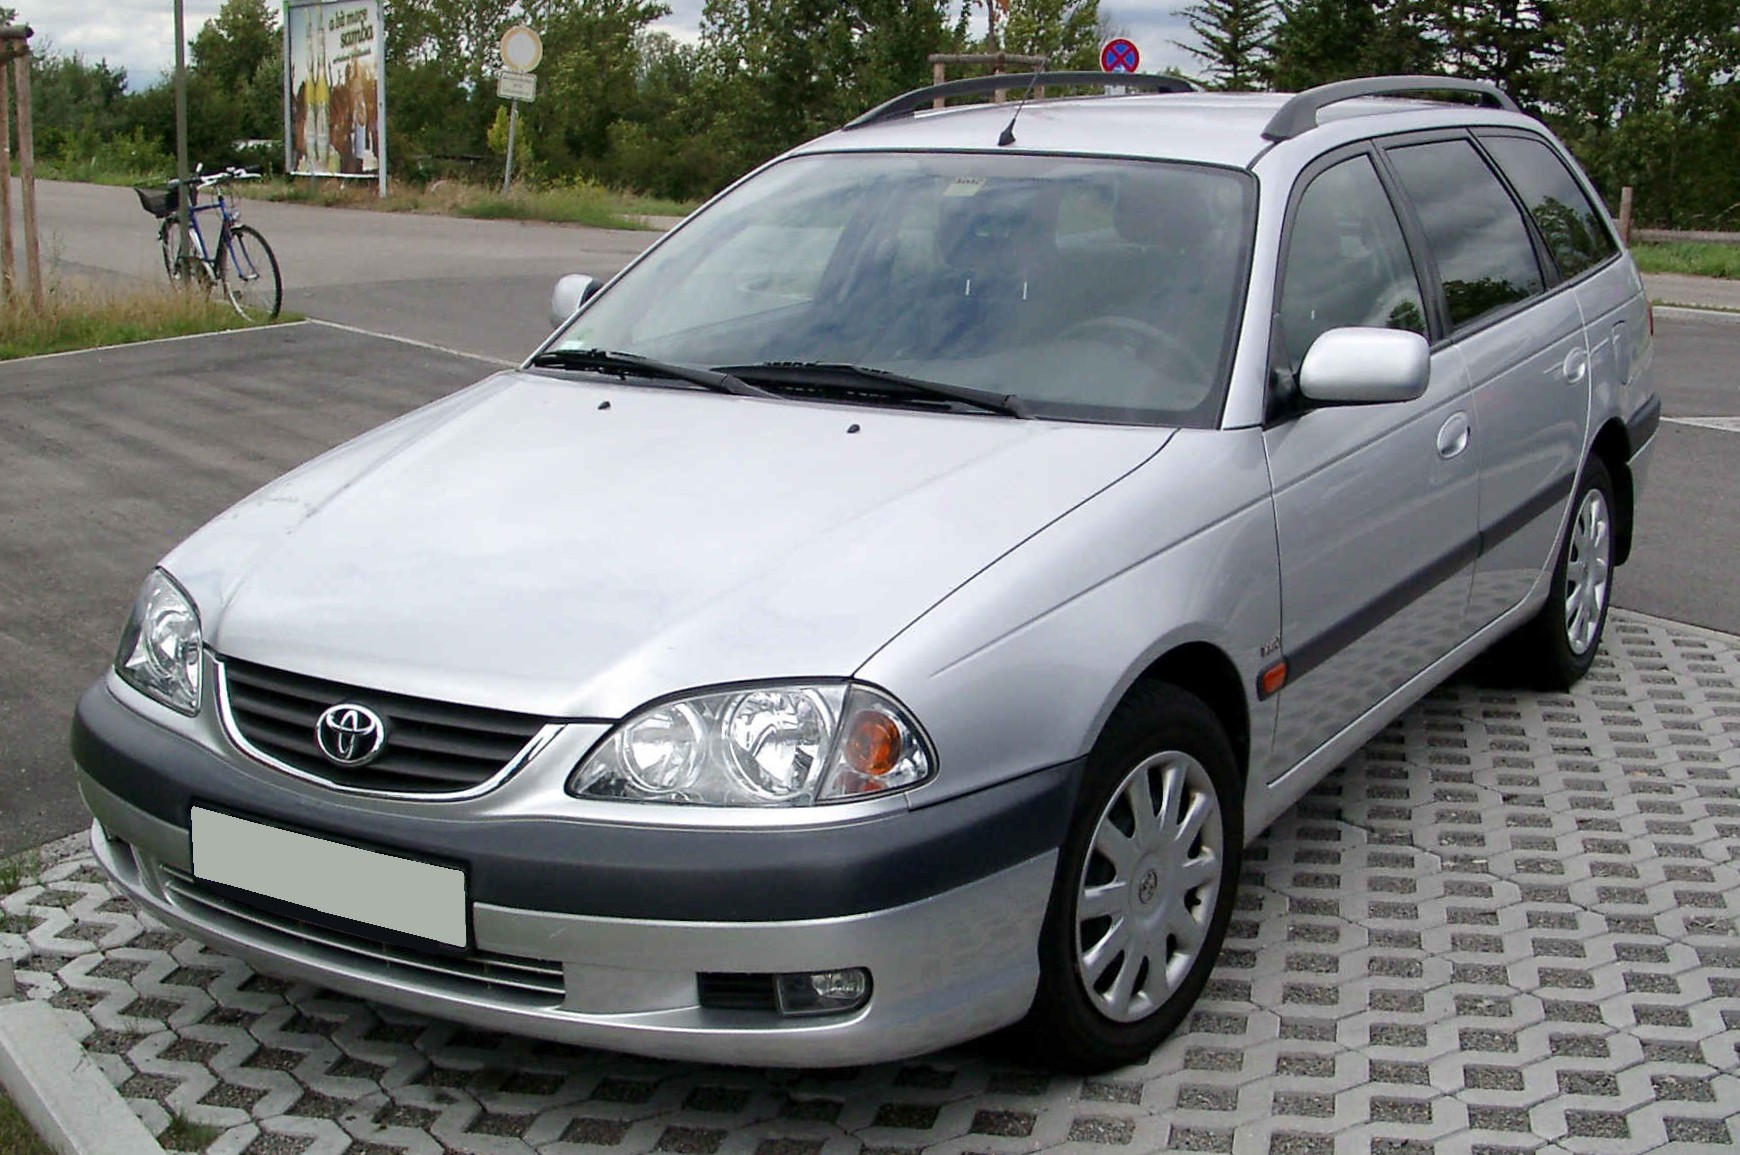 2003 toyota avensis wagon 2.0 di automatic related infomation